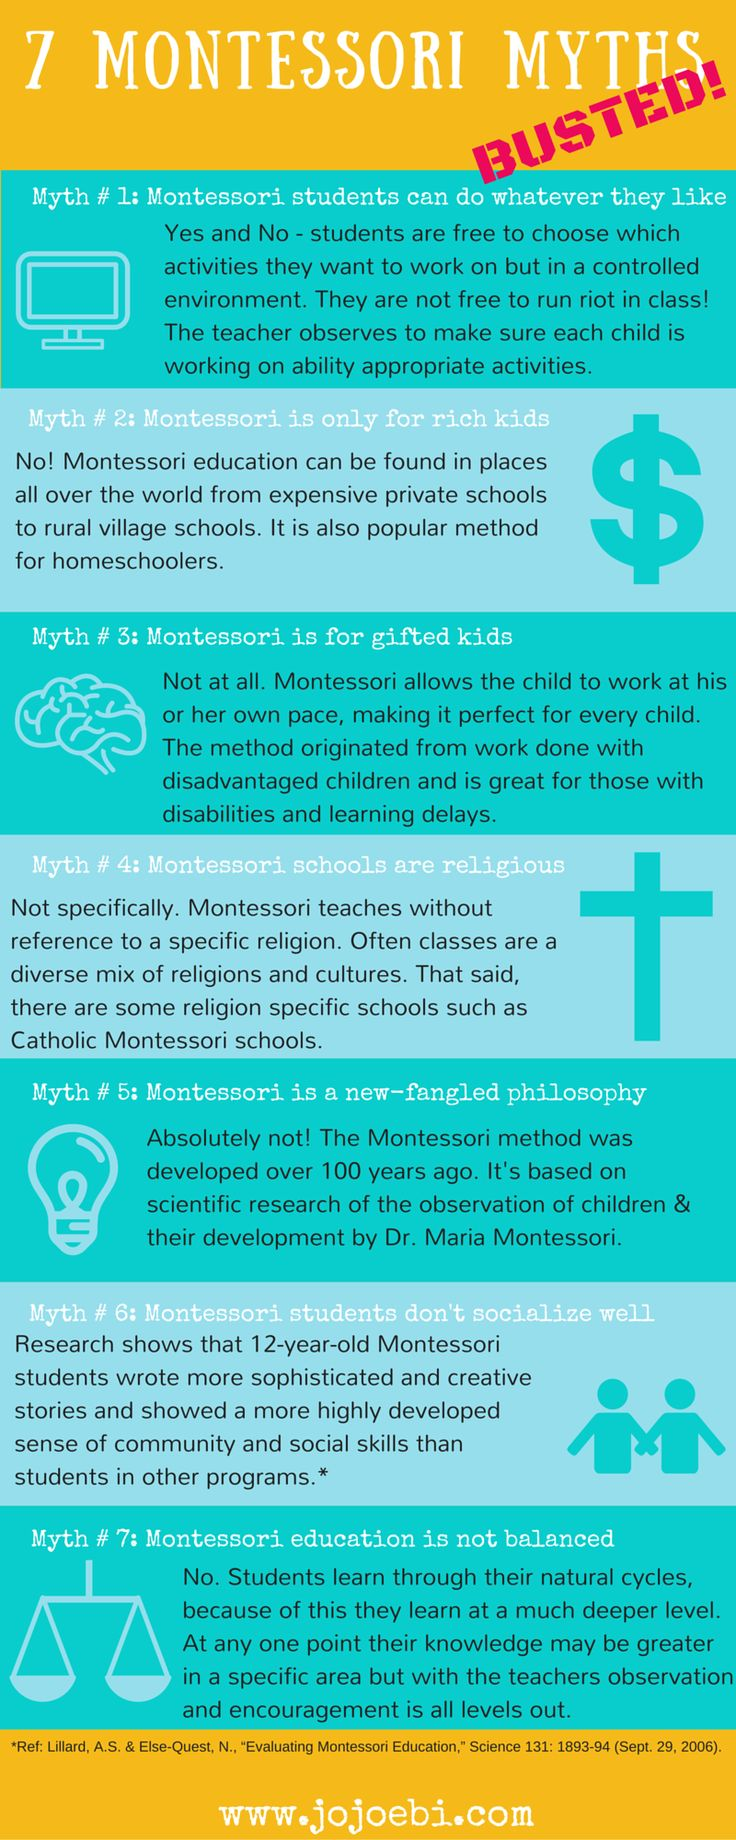 montessori infographic - 7 montessori myths busted